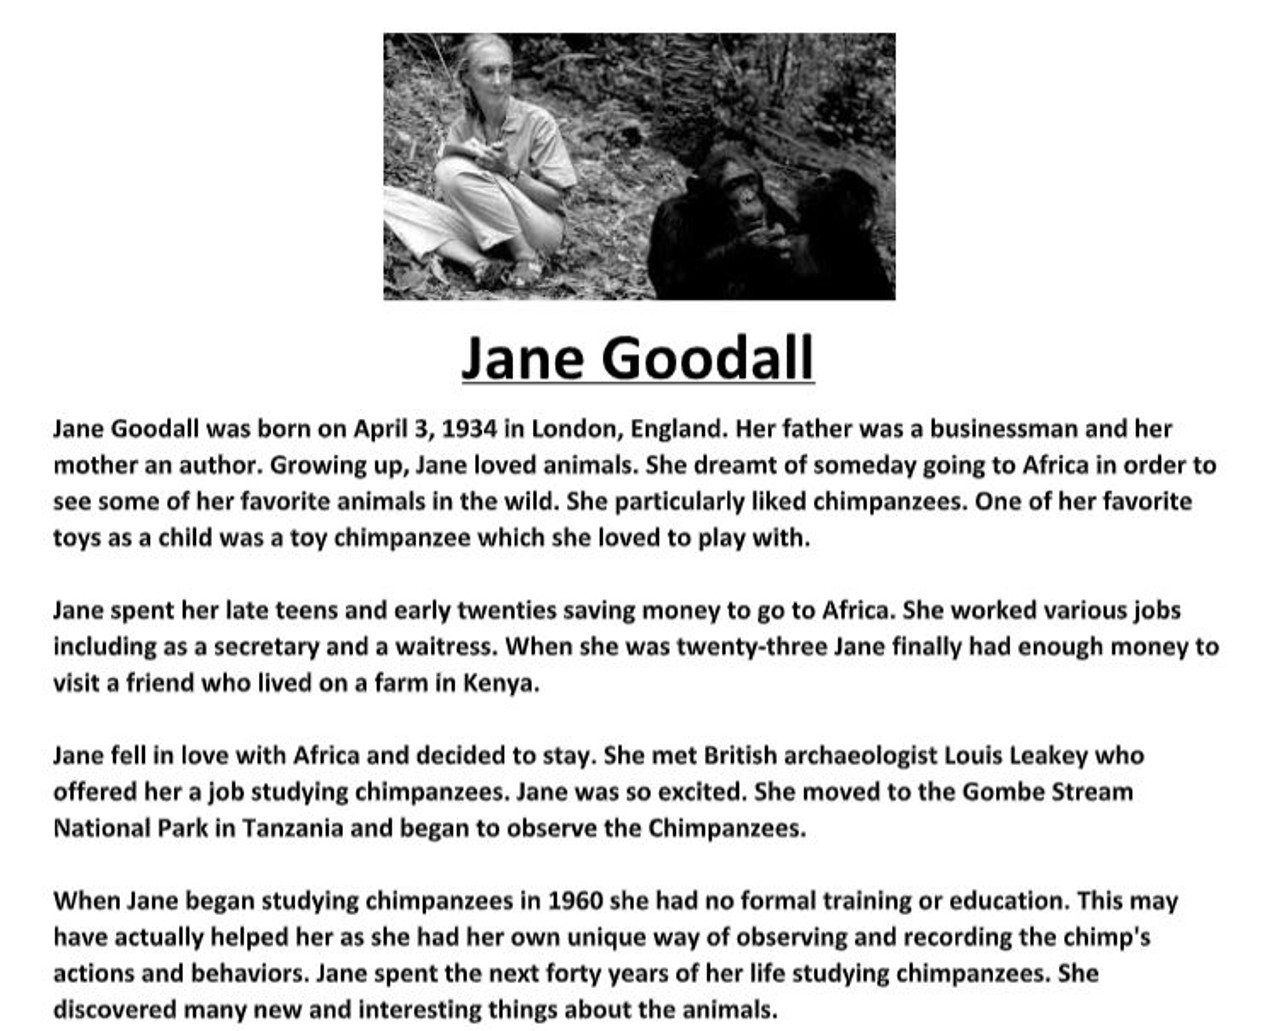 medium resolution of Jane Goodall Biography Worksheet - Amped Up Learning